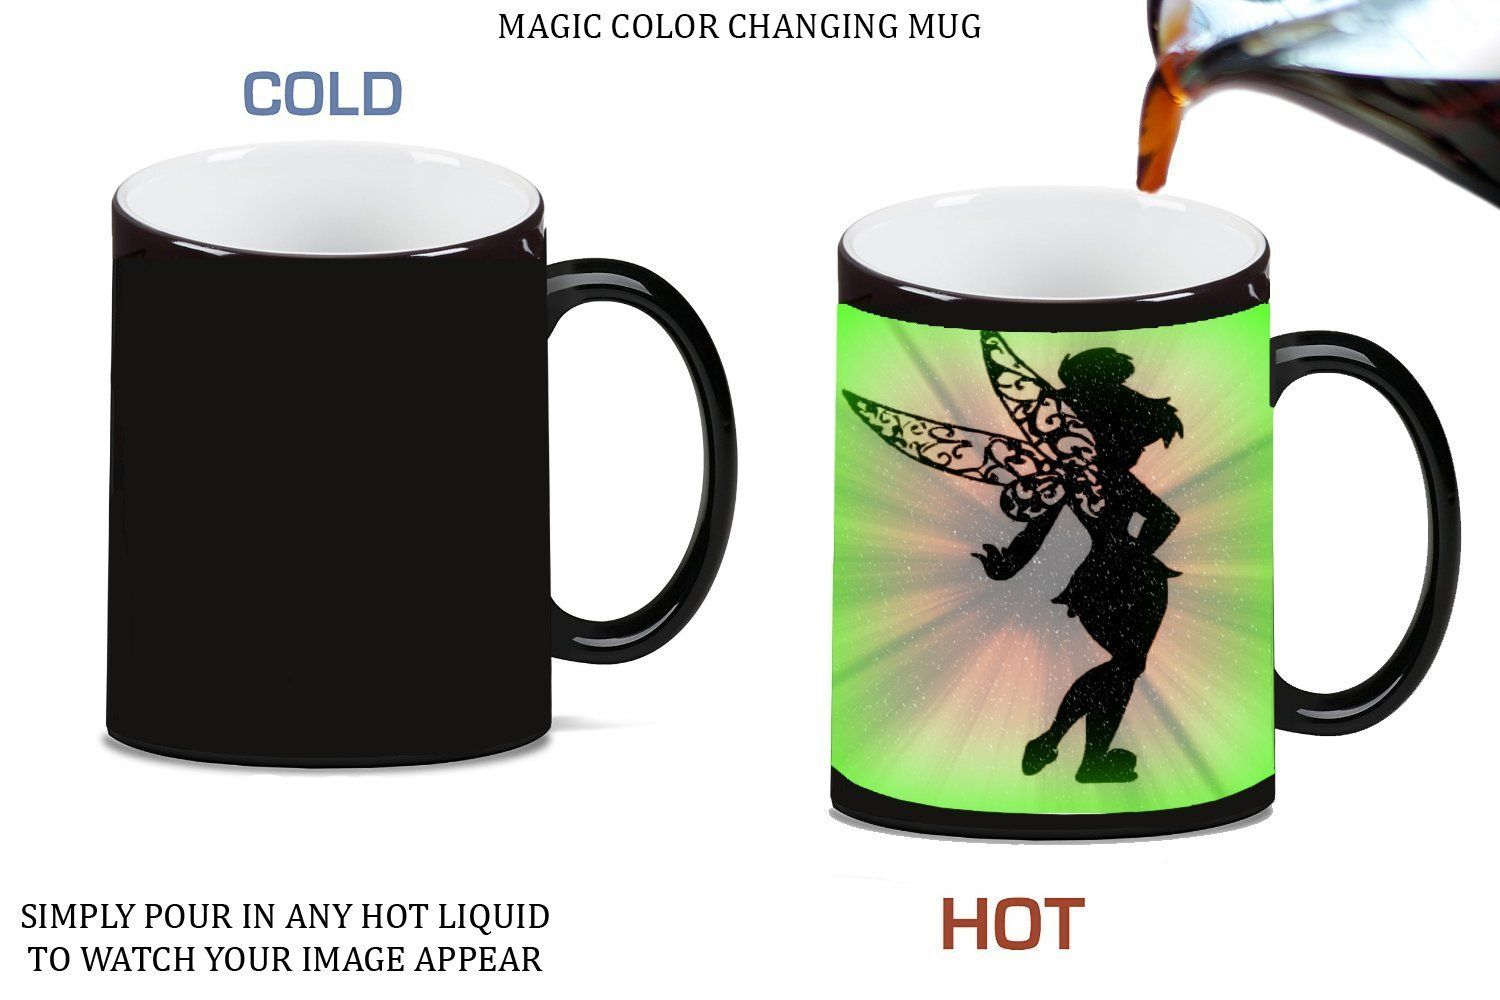 1500x1000 Cute Fairy Silhouette Design Print Image Magic Color Changing